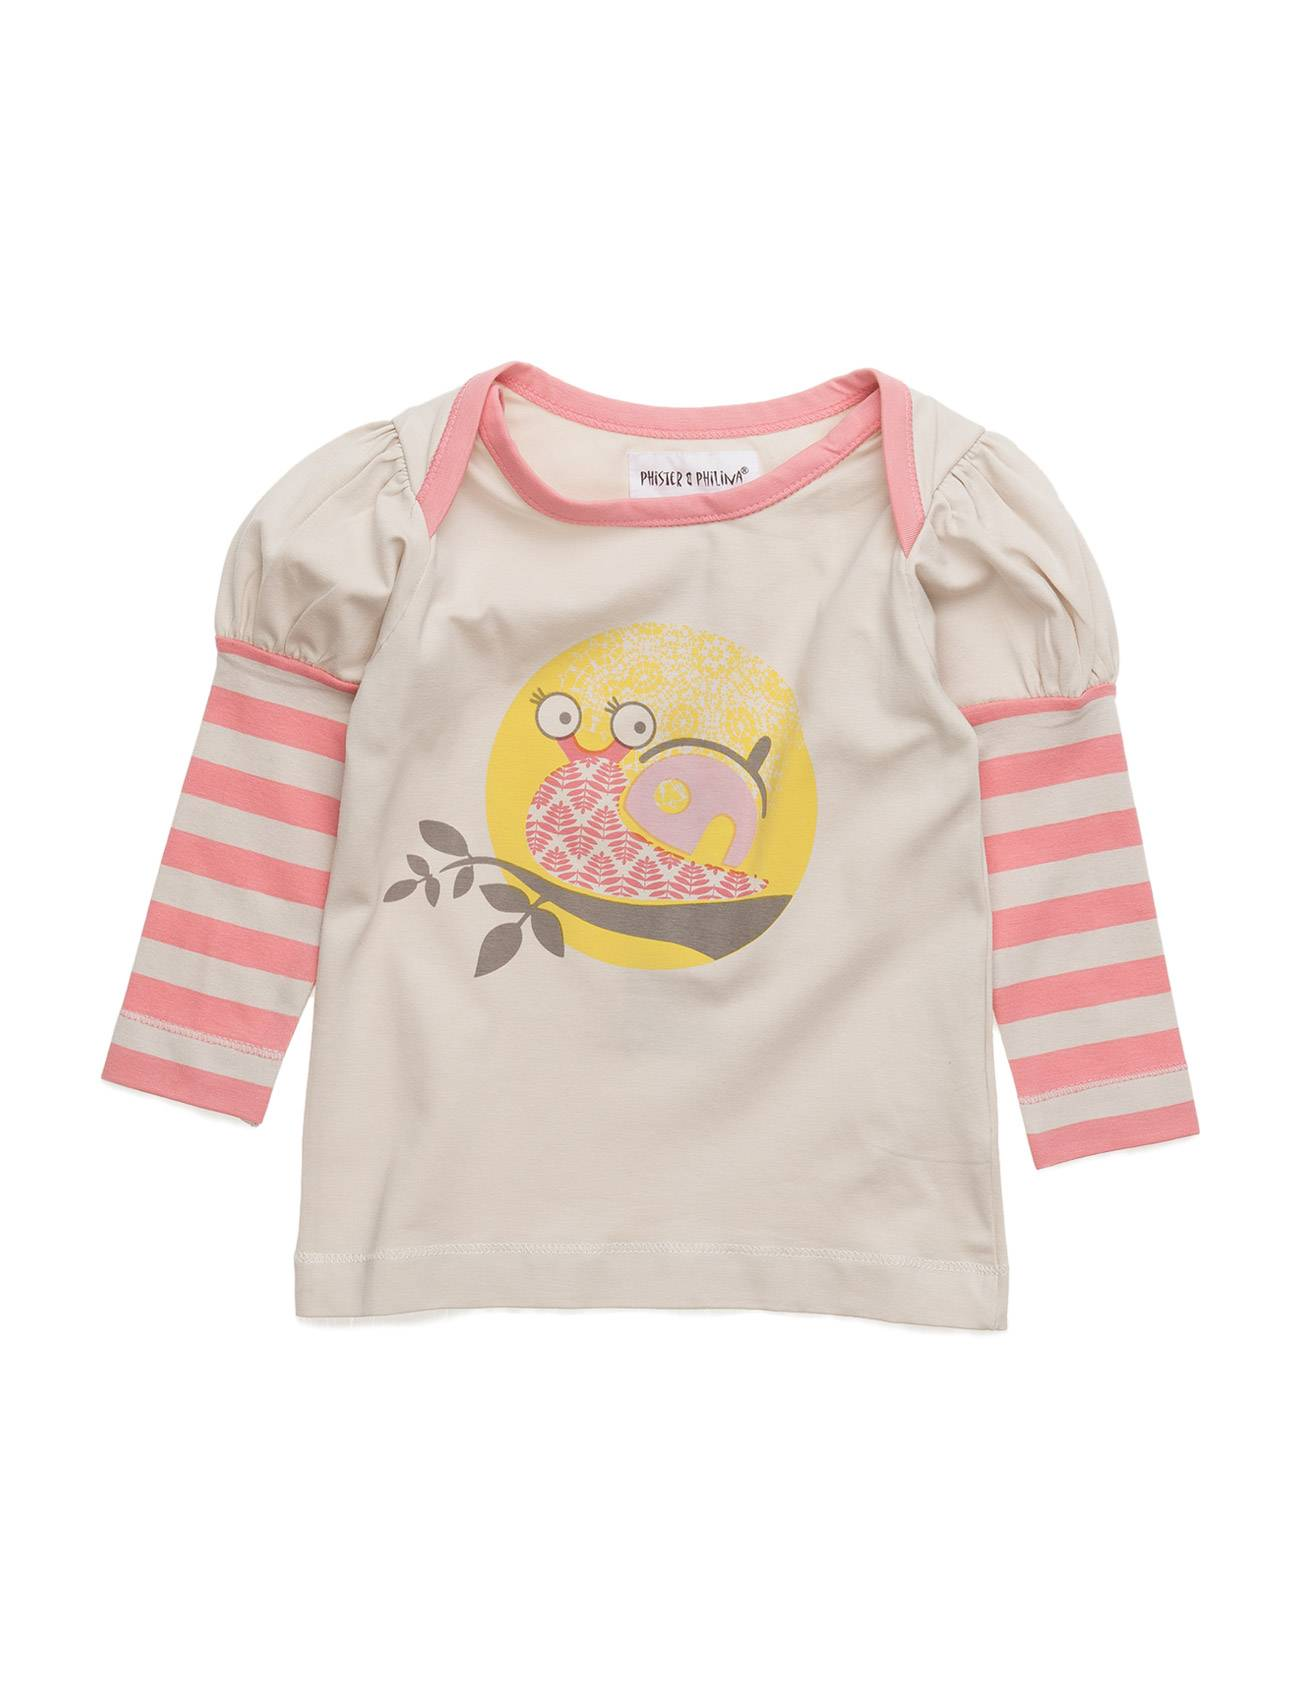 Phister & Philina Amy Baby Top